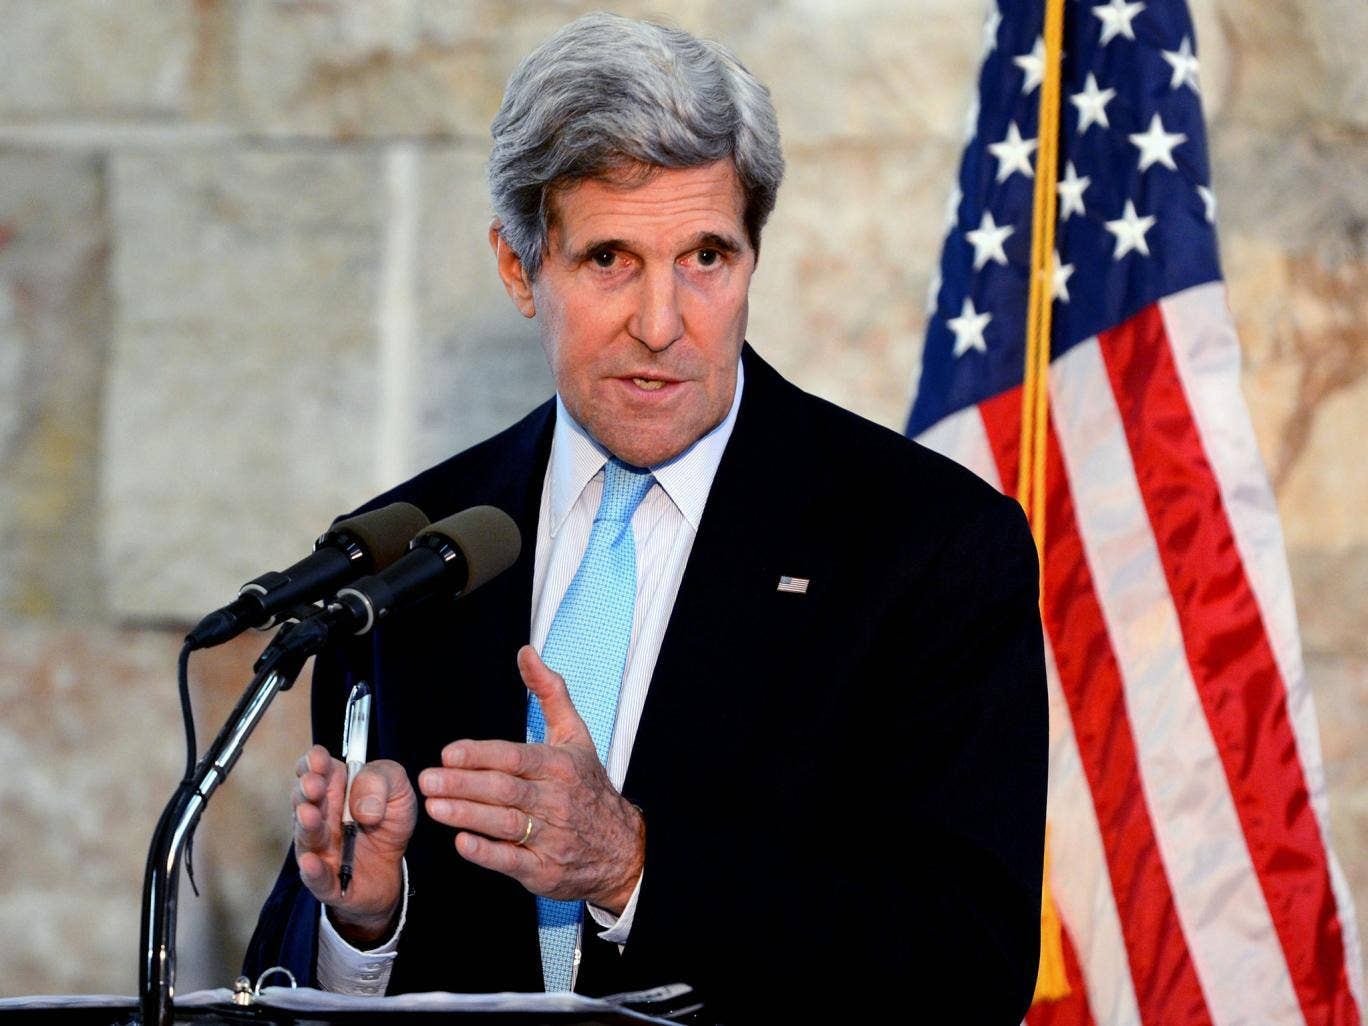 US Secretary of State John Kerry during a press conference in Tel Aviv, Israel